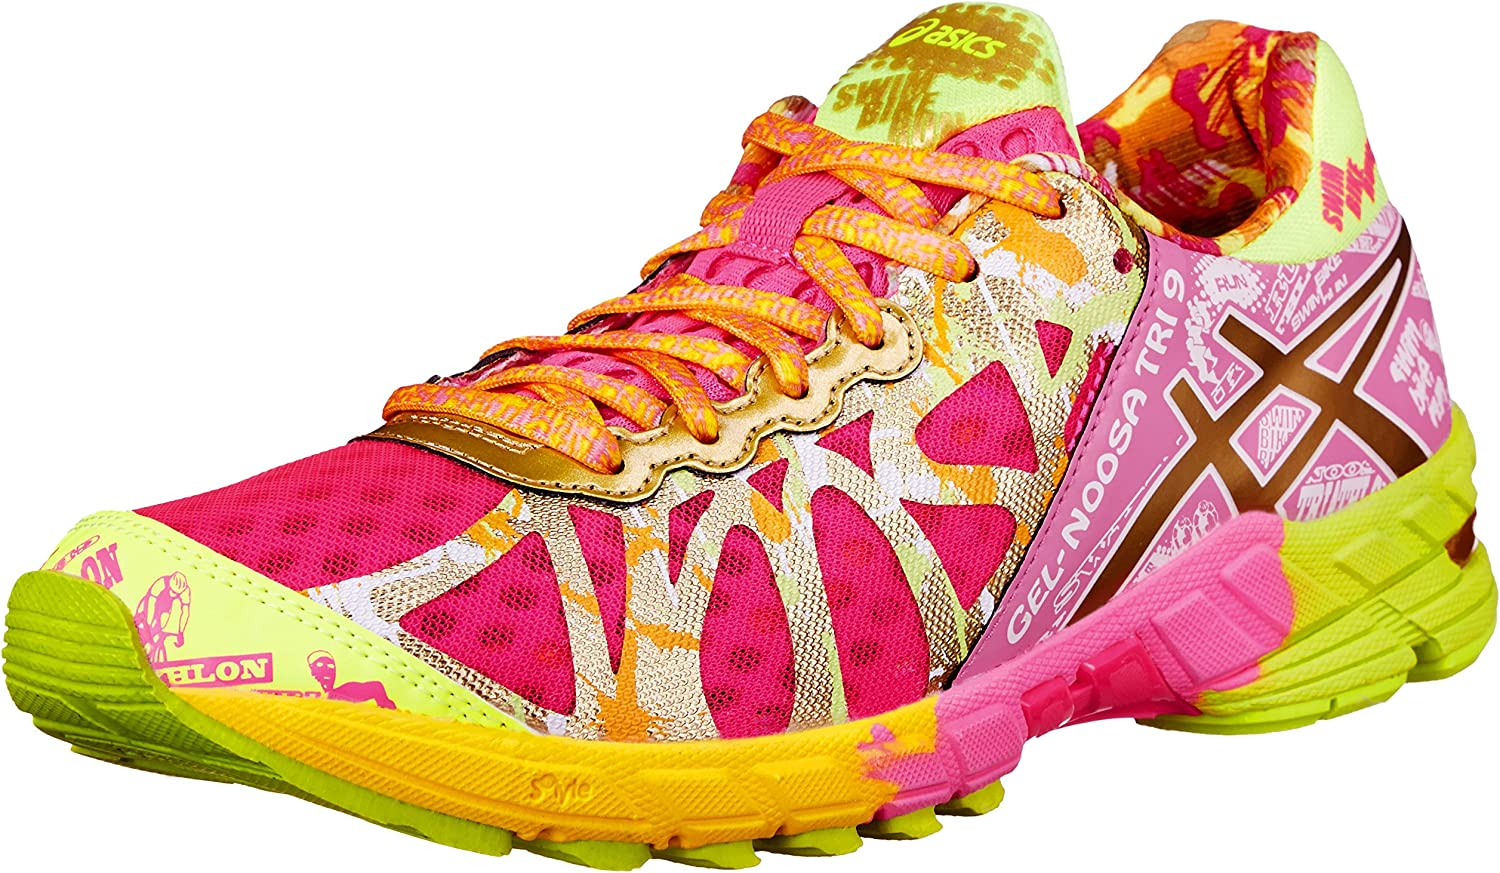 Asics Gel-Noosa Tri 9 Gr de la Mujer Running Shoe, Rosado (Hot Pink/Gold/Gold Ribbon), 5.5 B(M) US: Amazon.es: Zapatos y complementos